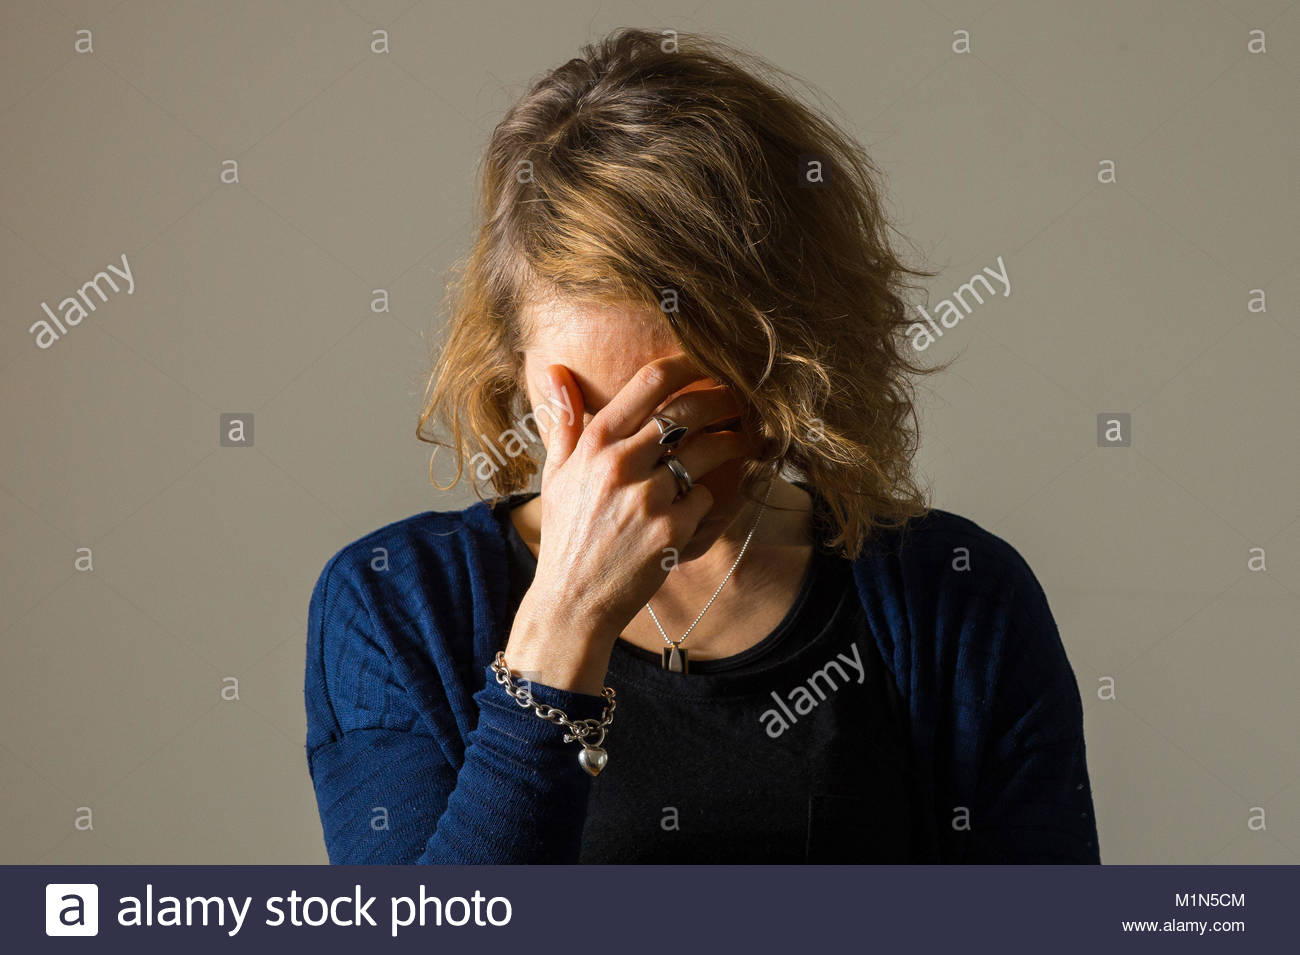 Embargoed to 2330 Wednesday January 31 PICTURE POSED BY MODEL File photo dated 09/03/15 of a woman with a migraine, - Stock Image